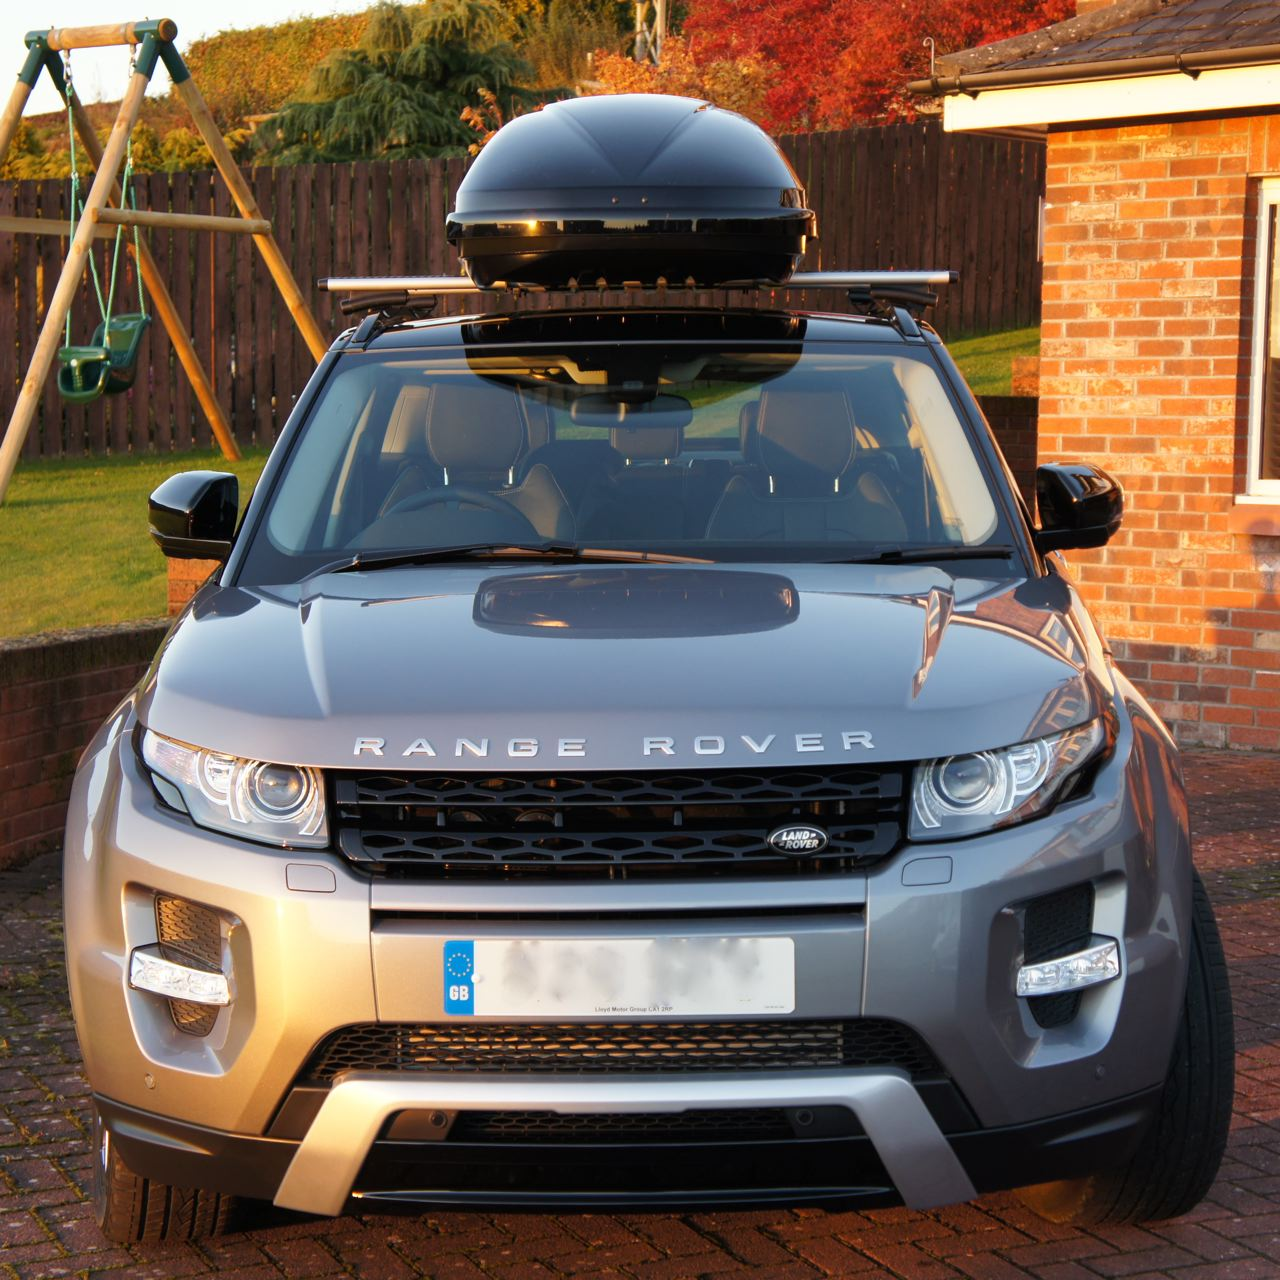 2013 Evoque At US Land Rover Dealership